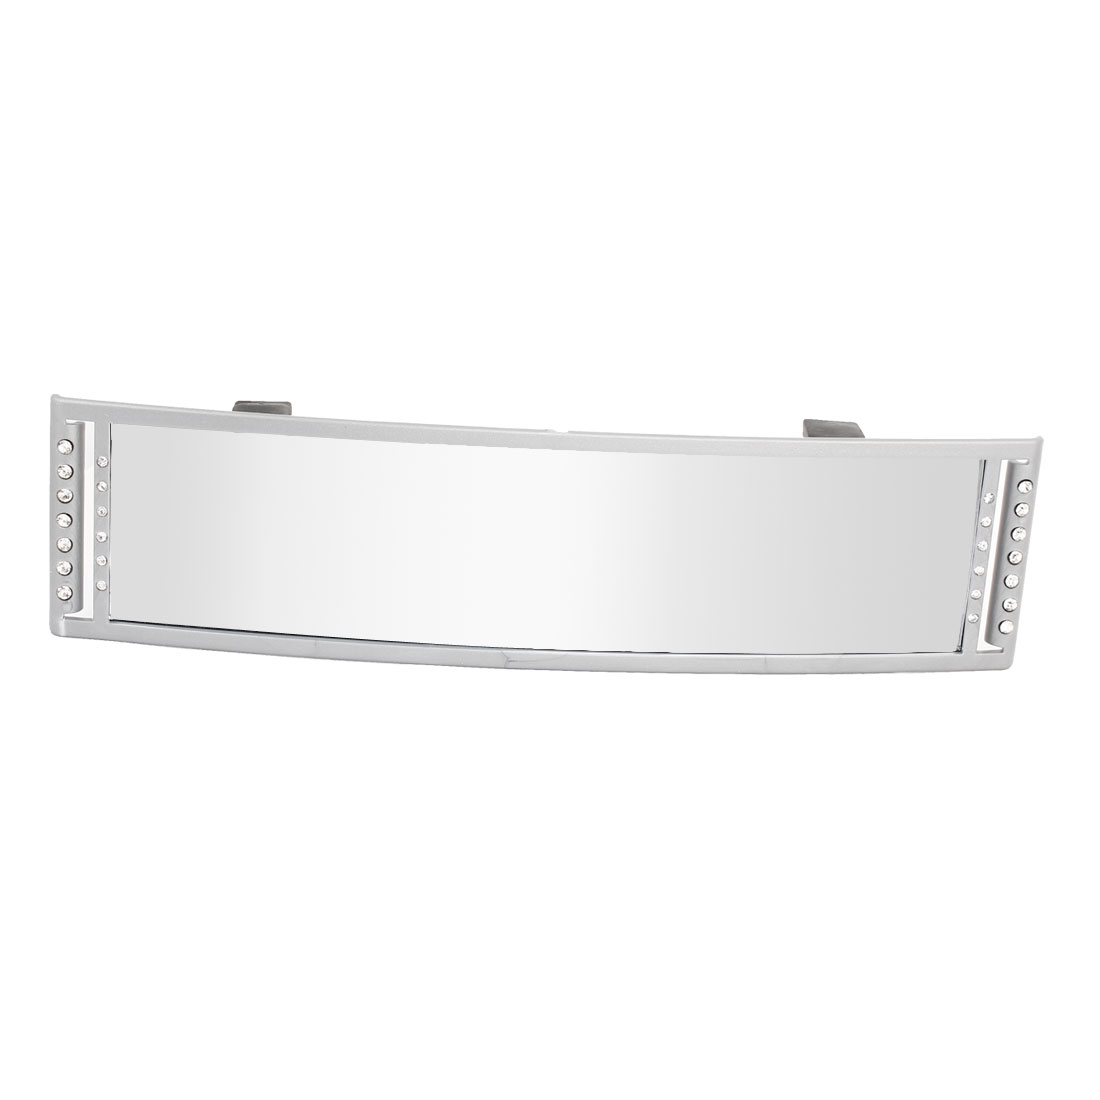 270mm Car Interior Gray Plastic Frame Wide Angle Rearview Mirror